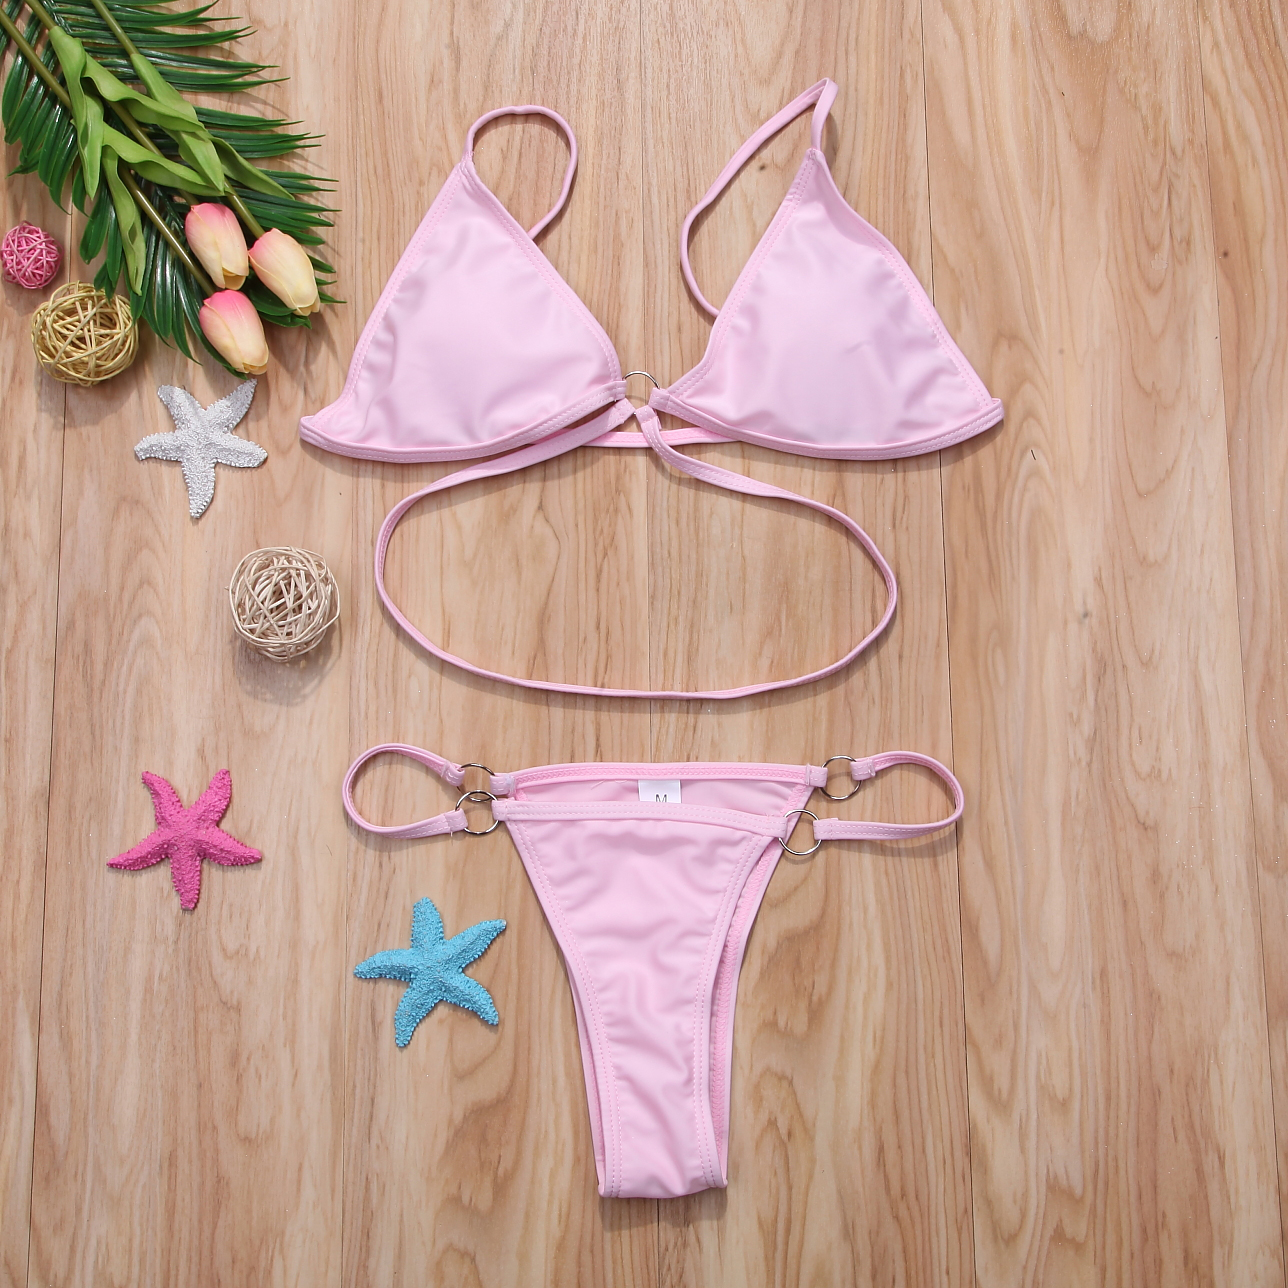 Low Waist Bikini Set 4